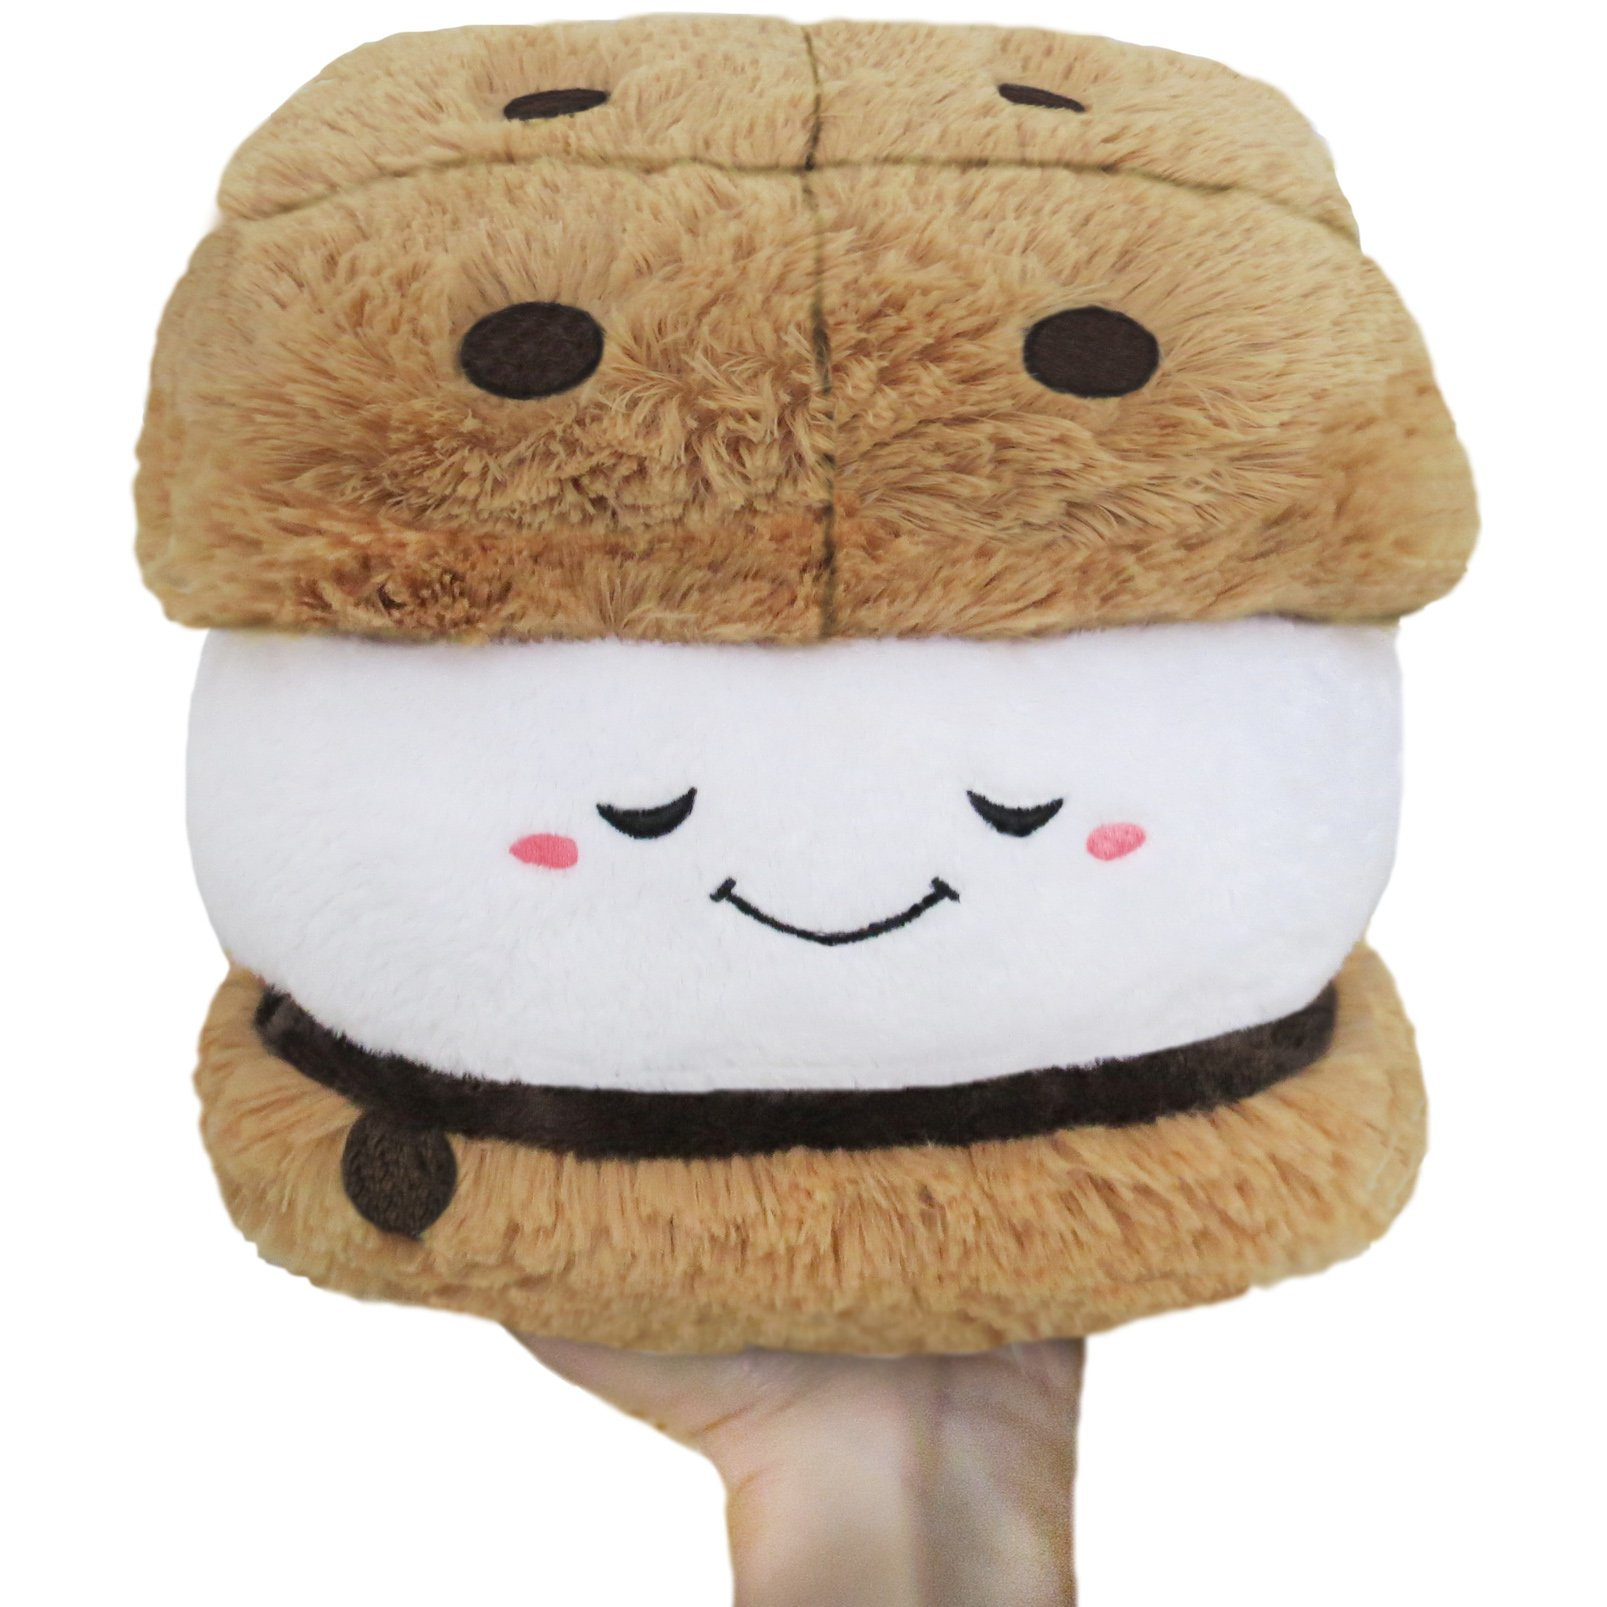 Squishable / Mini Smore - 7'' Plush by Squishable (Image #1)